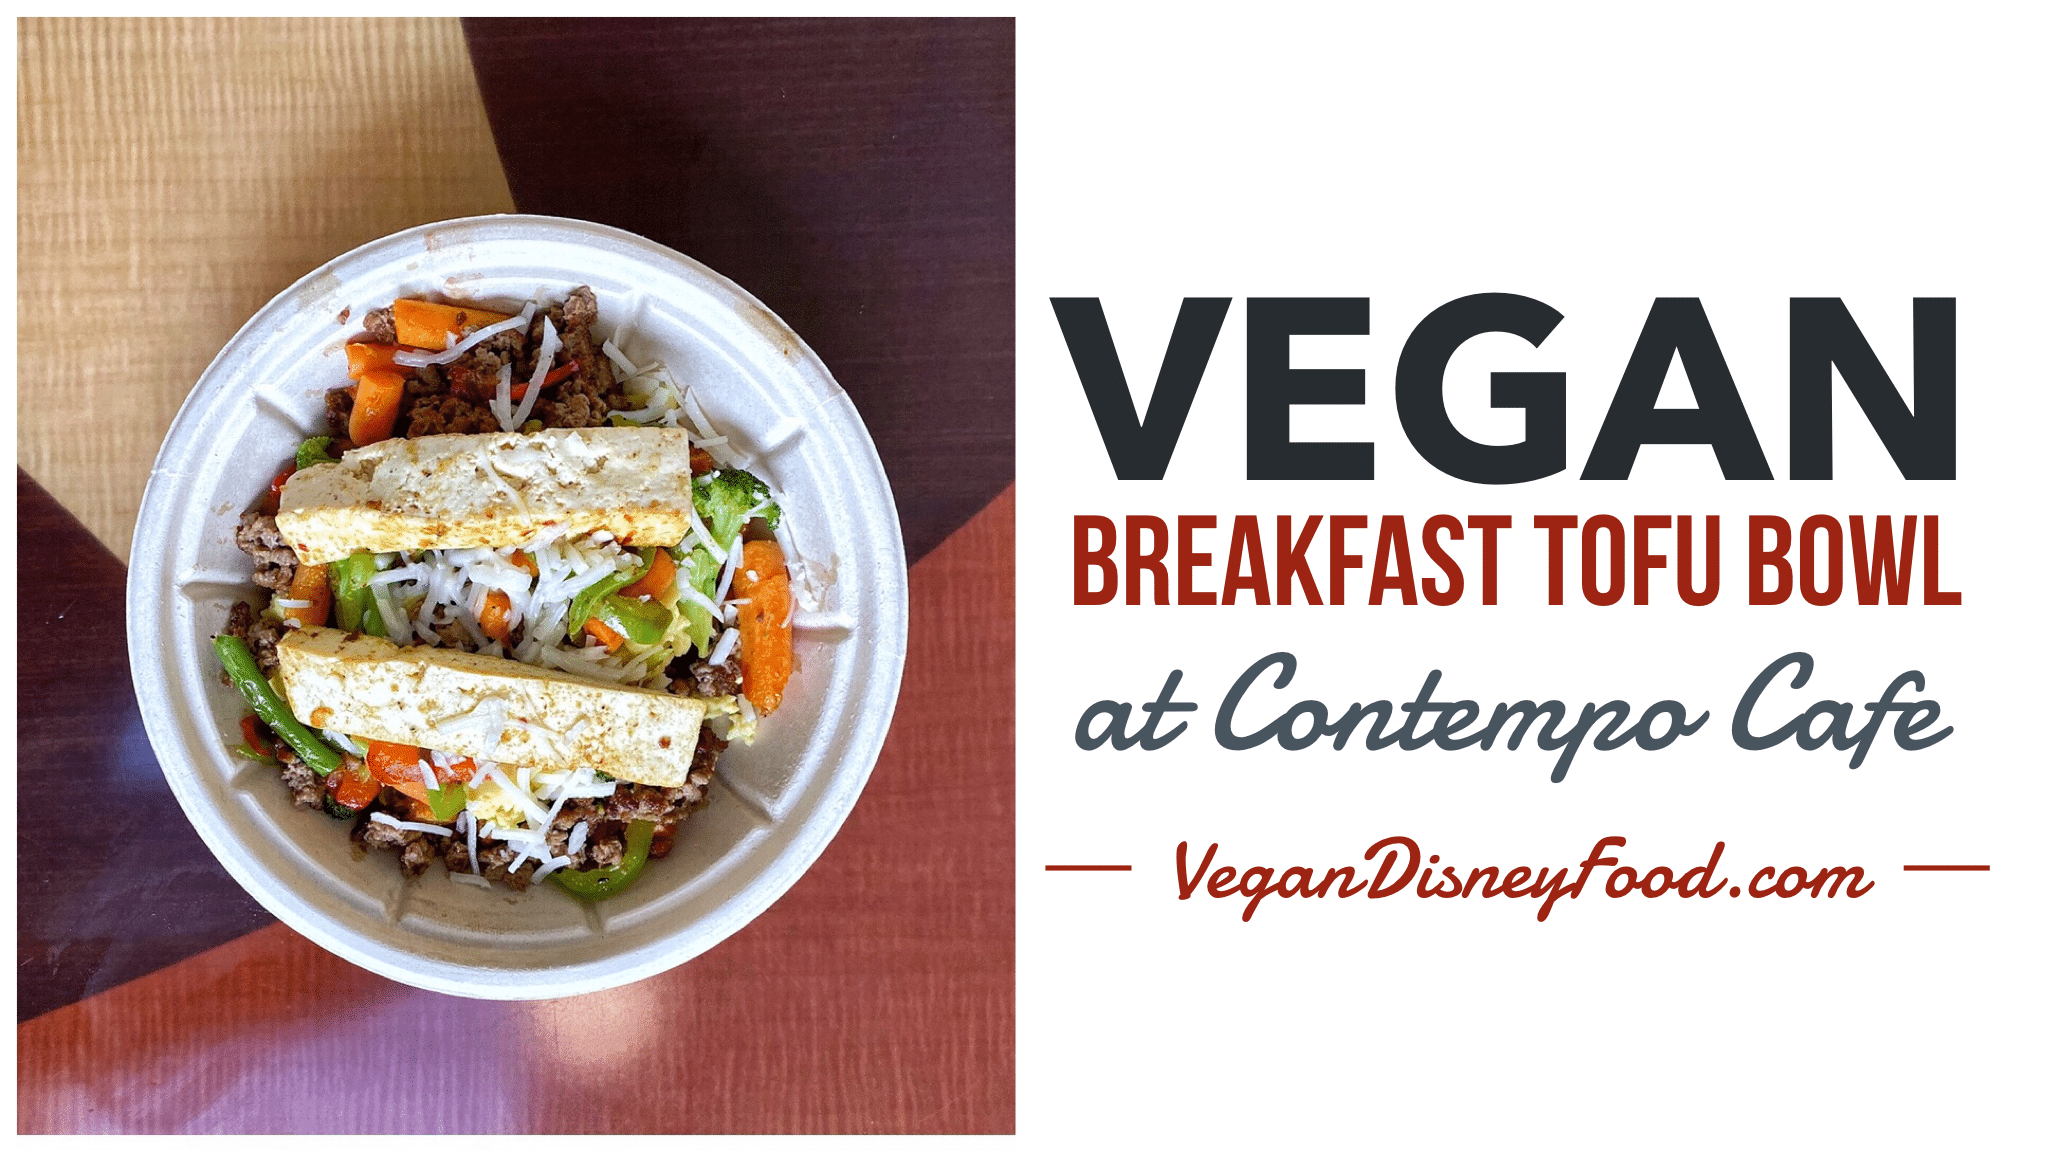 Vegan Breakfast Tofu Bowl at Contempo Cafe in the Contemporary Resort at Walt Disney World